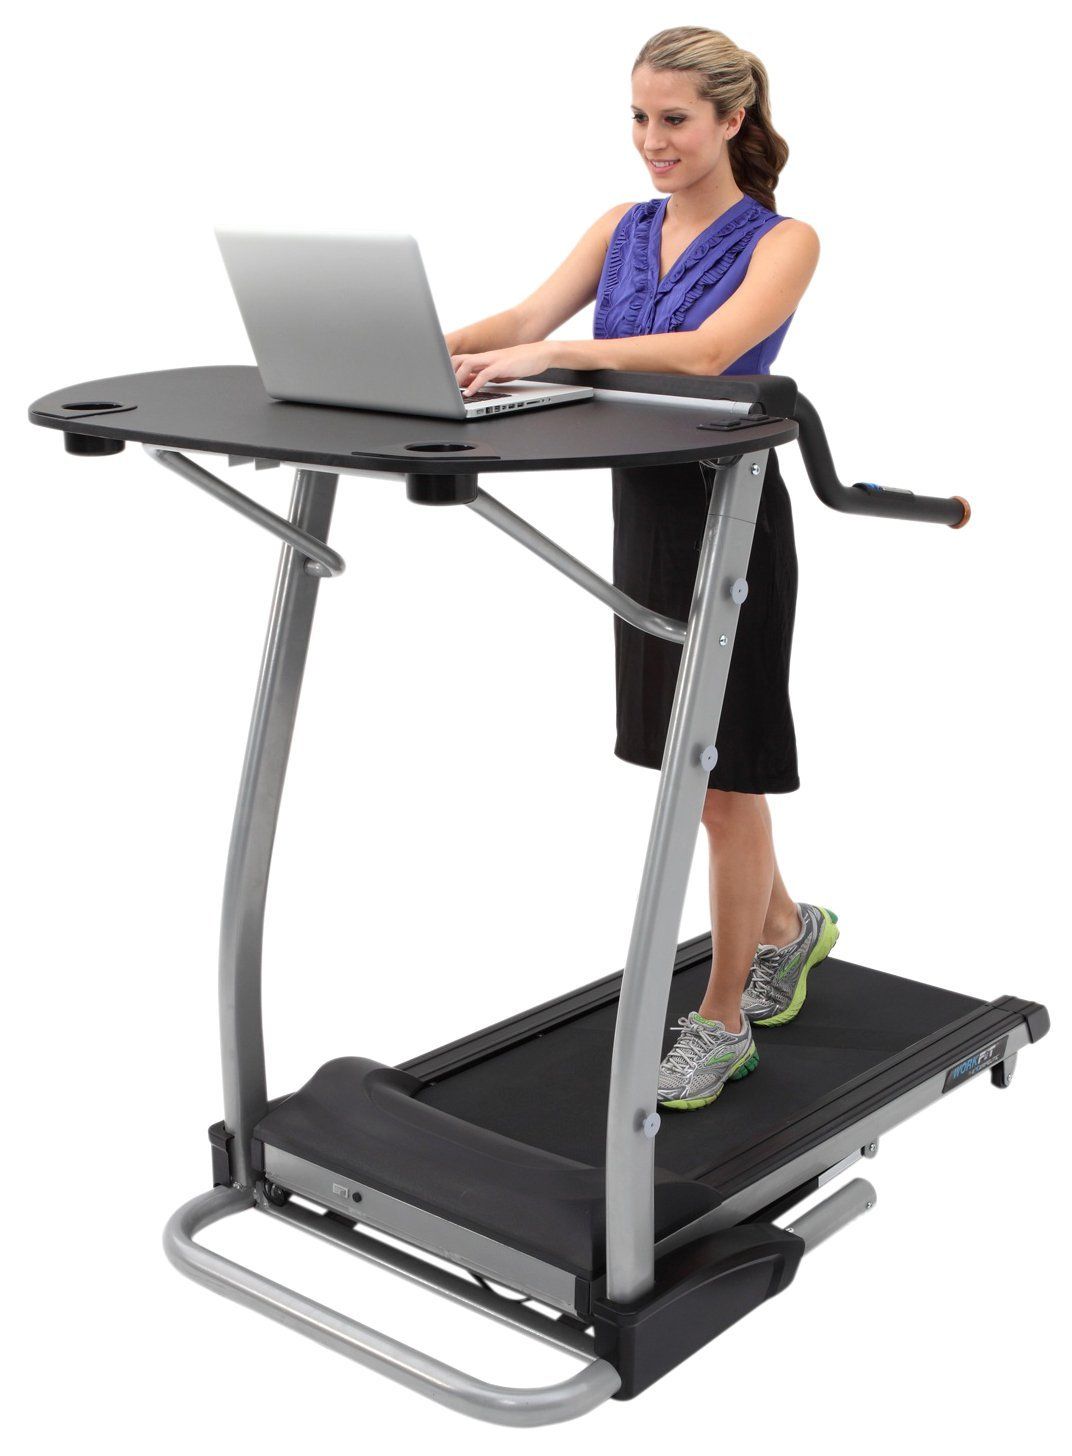 Exerpeutic Workfit 2000 Treadmill Desk Review